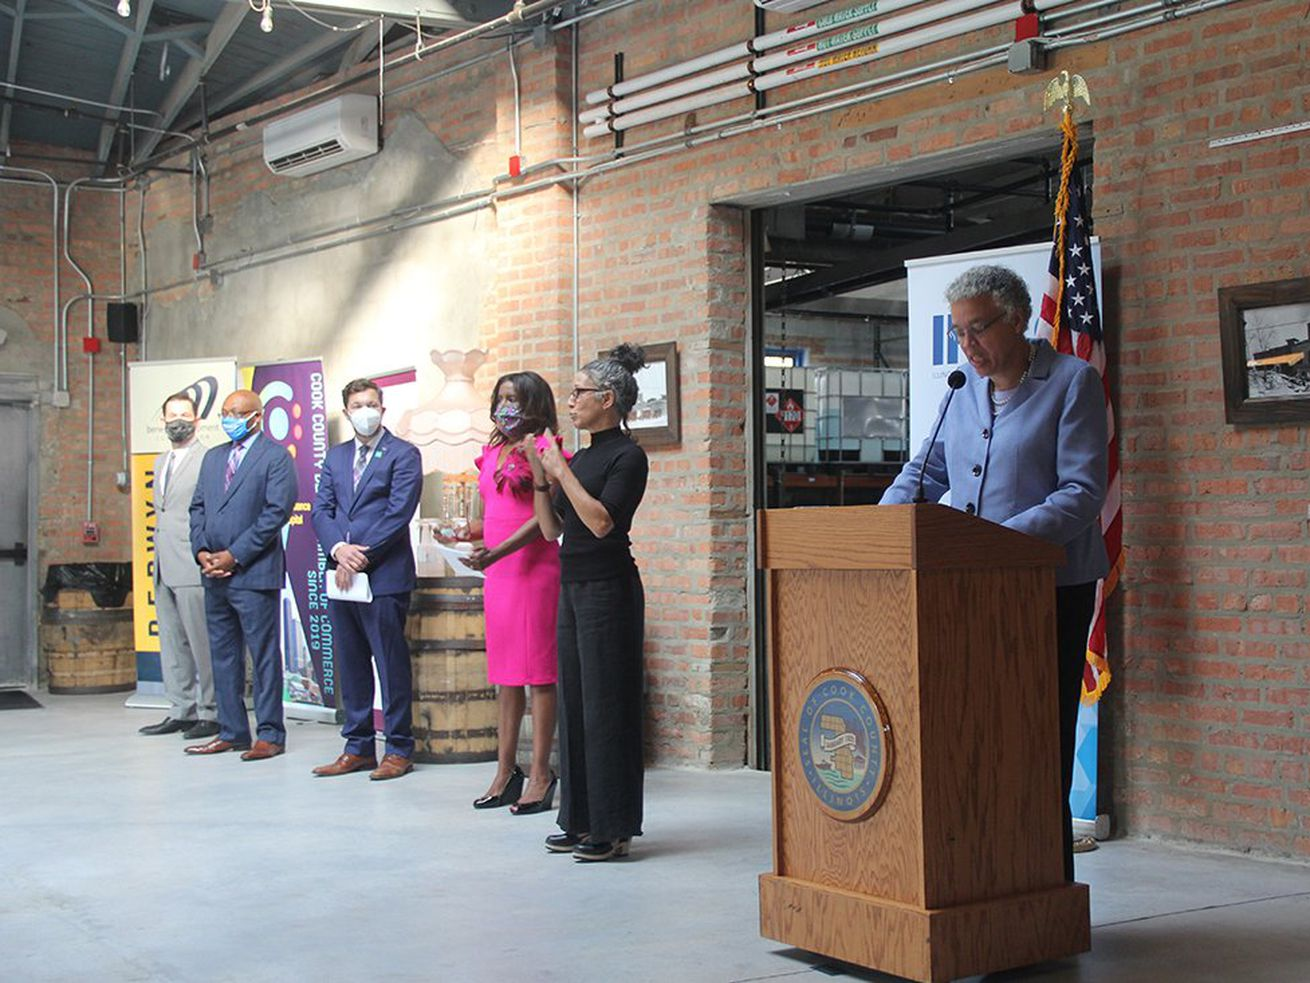 Cook County Commissioner Kevin Morrison, third from left, looks on while Cook County Board President Toni Preckwinkle speaks at Thornton Distilling Company Sept. 23.